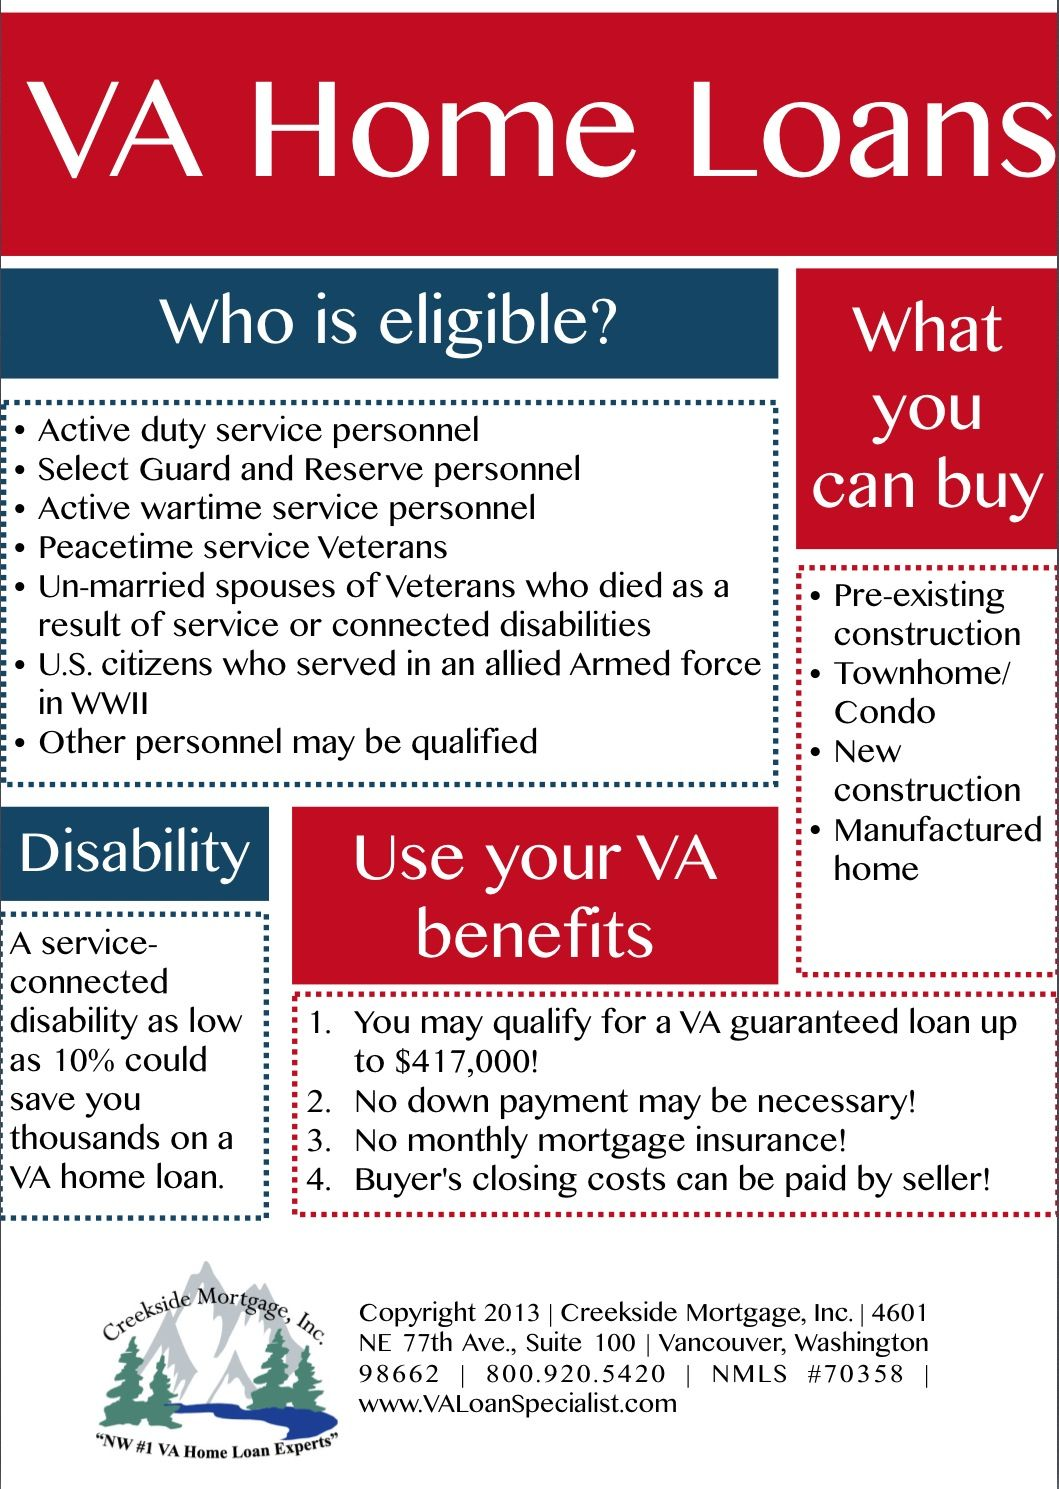 Va Home Loans Are The Specialty At Creekside Mortgage Inc For More Information Go To Www Valoanspeciali Home Loans Mortgage Loan Calculator Mortgage Loans